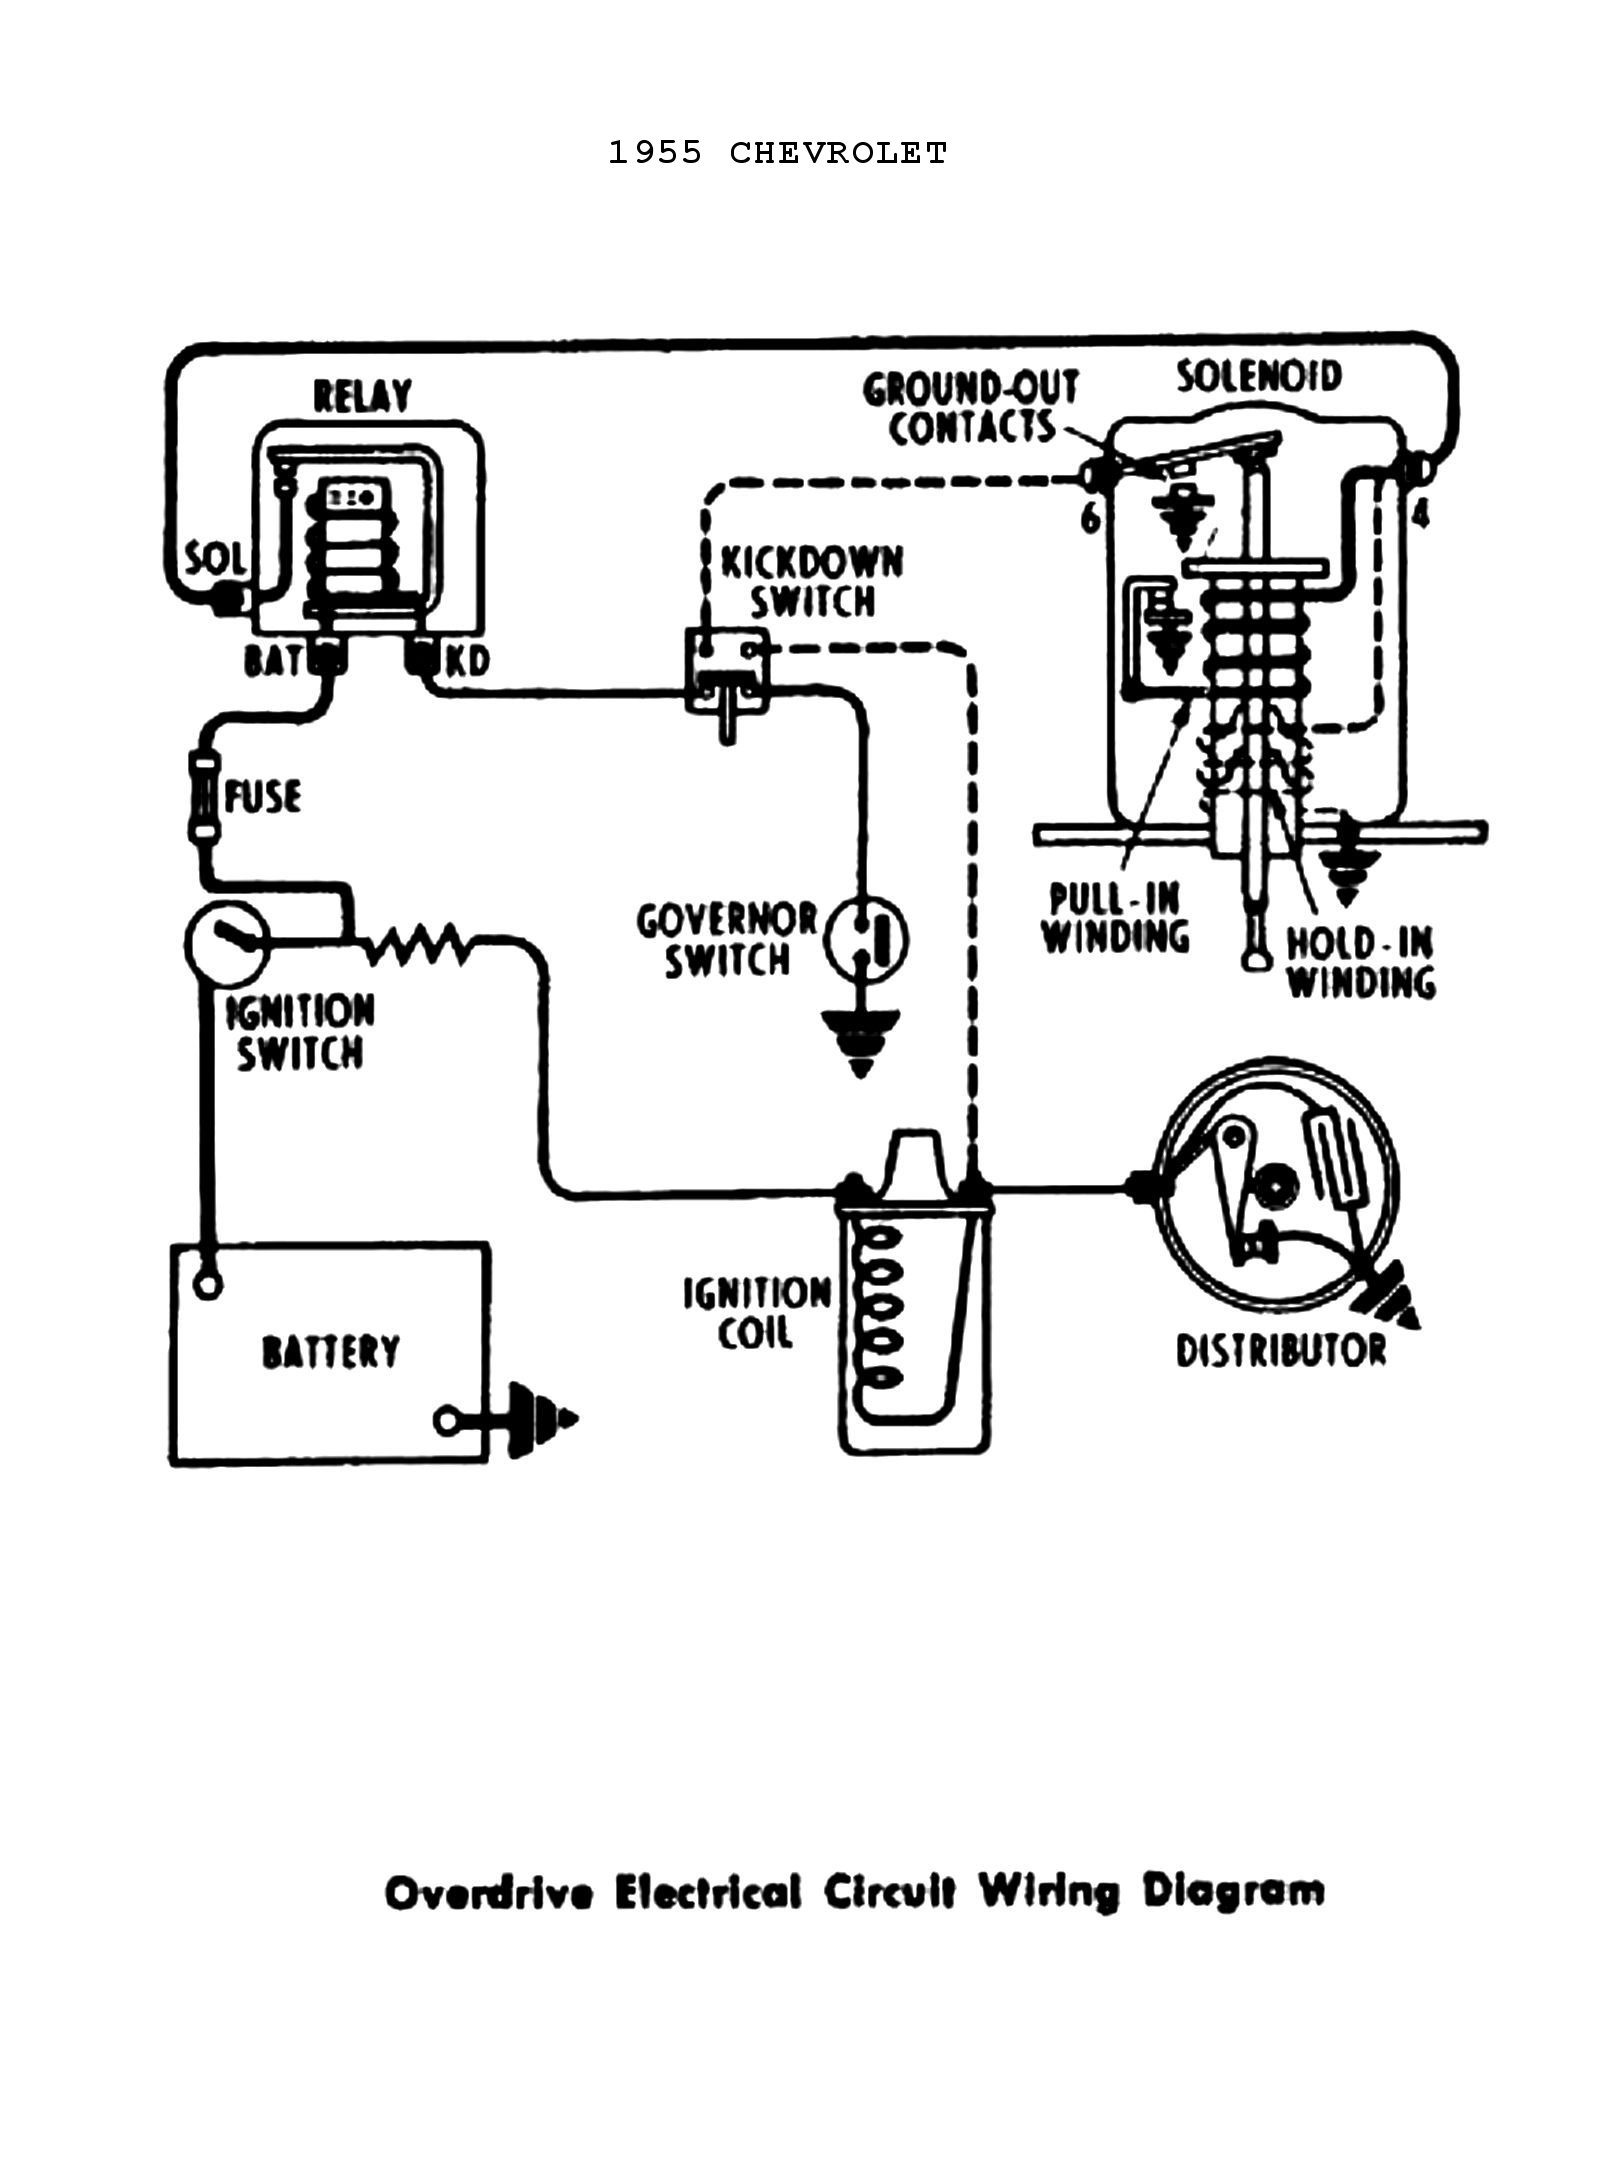 1941 Chevy Coupe Wiring Diagram on 1953 ford parts cars